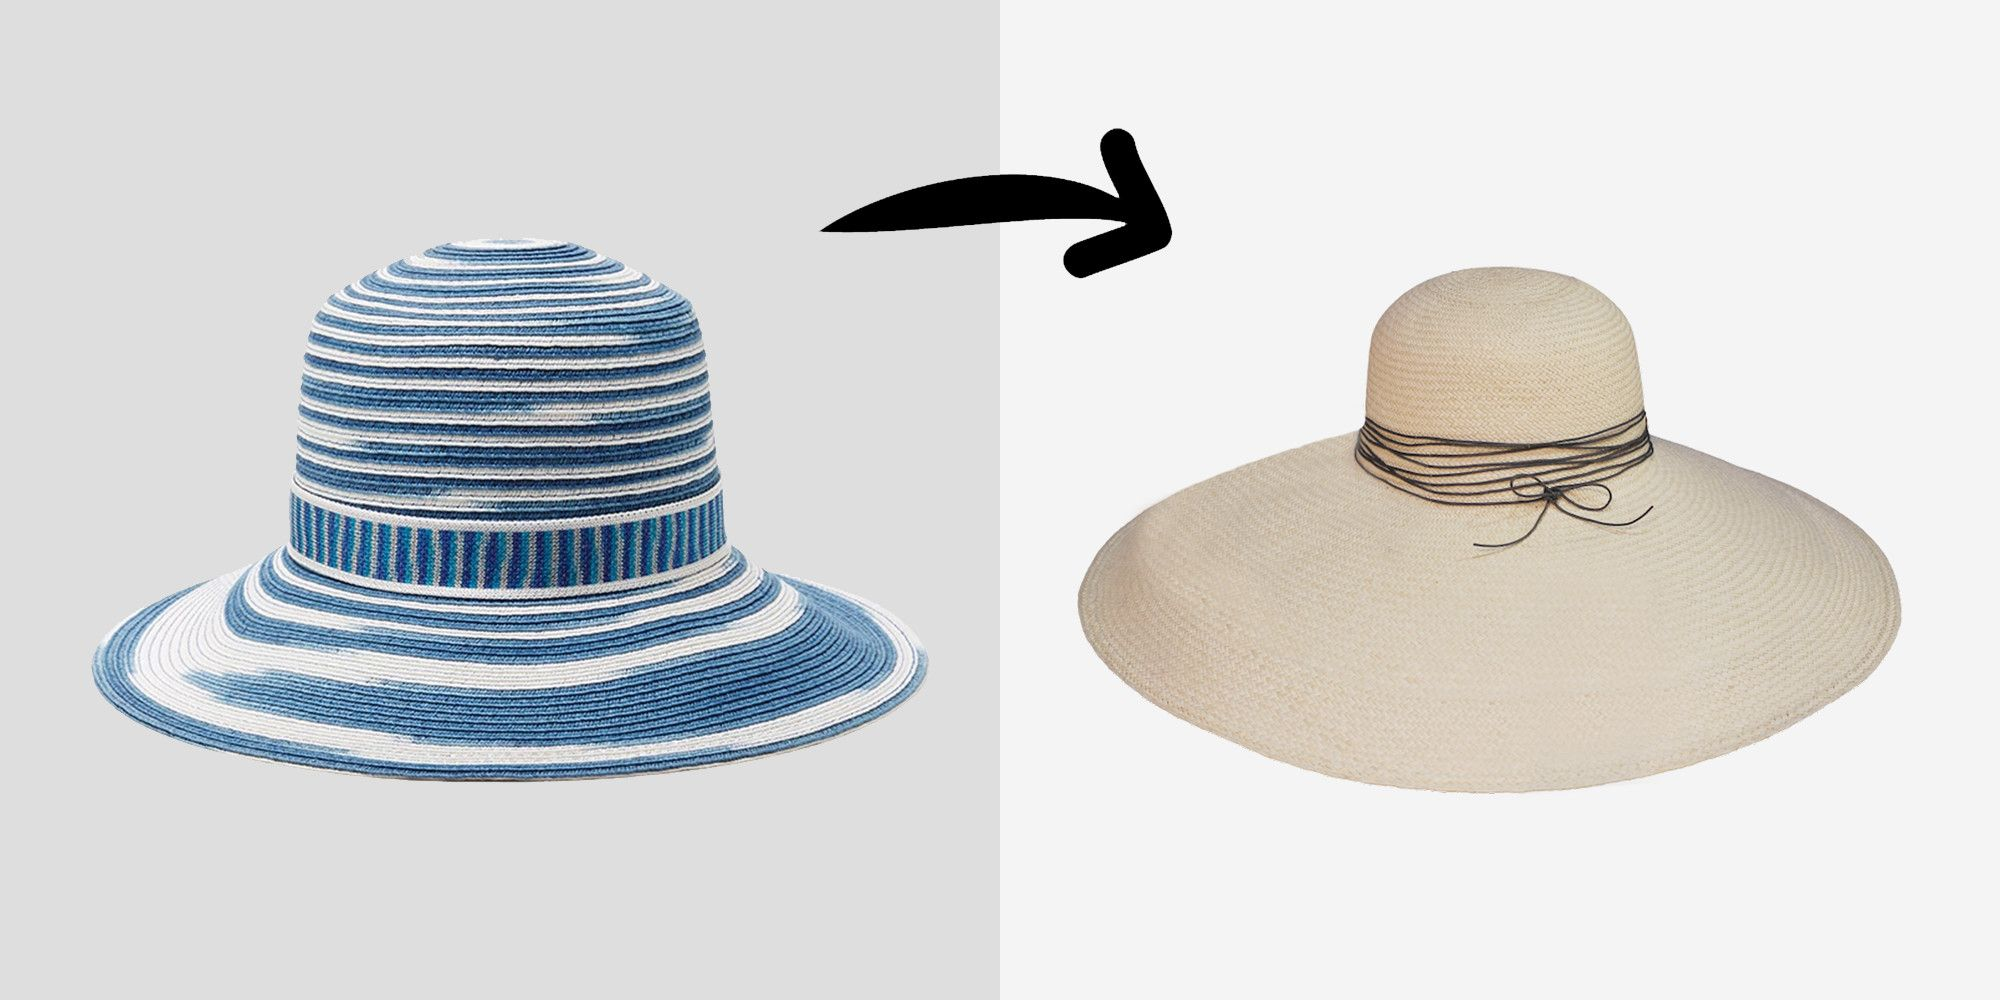 "<p>A wider brim = more sun protection but also more mystery and glamour and allure. Or, at the very least, it makes it easier to pretend you're not sleeping. </p><p><br></p><p><em>Missoni striped sun hat, $395, <a href=""http://rstyle.me/n/bppueebqb8f"">modaoperandi.com</a>; Artesano Panama hat, $260, <a href=""http://www.artesano.net/#!product-page/c6np/d034d05c-e8cf-dc44-7d44-a7d16444db63"">artesano.net</a>.</em></p>"